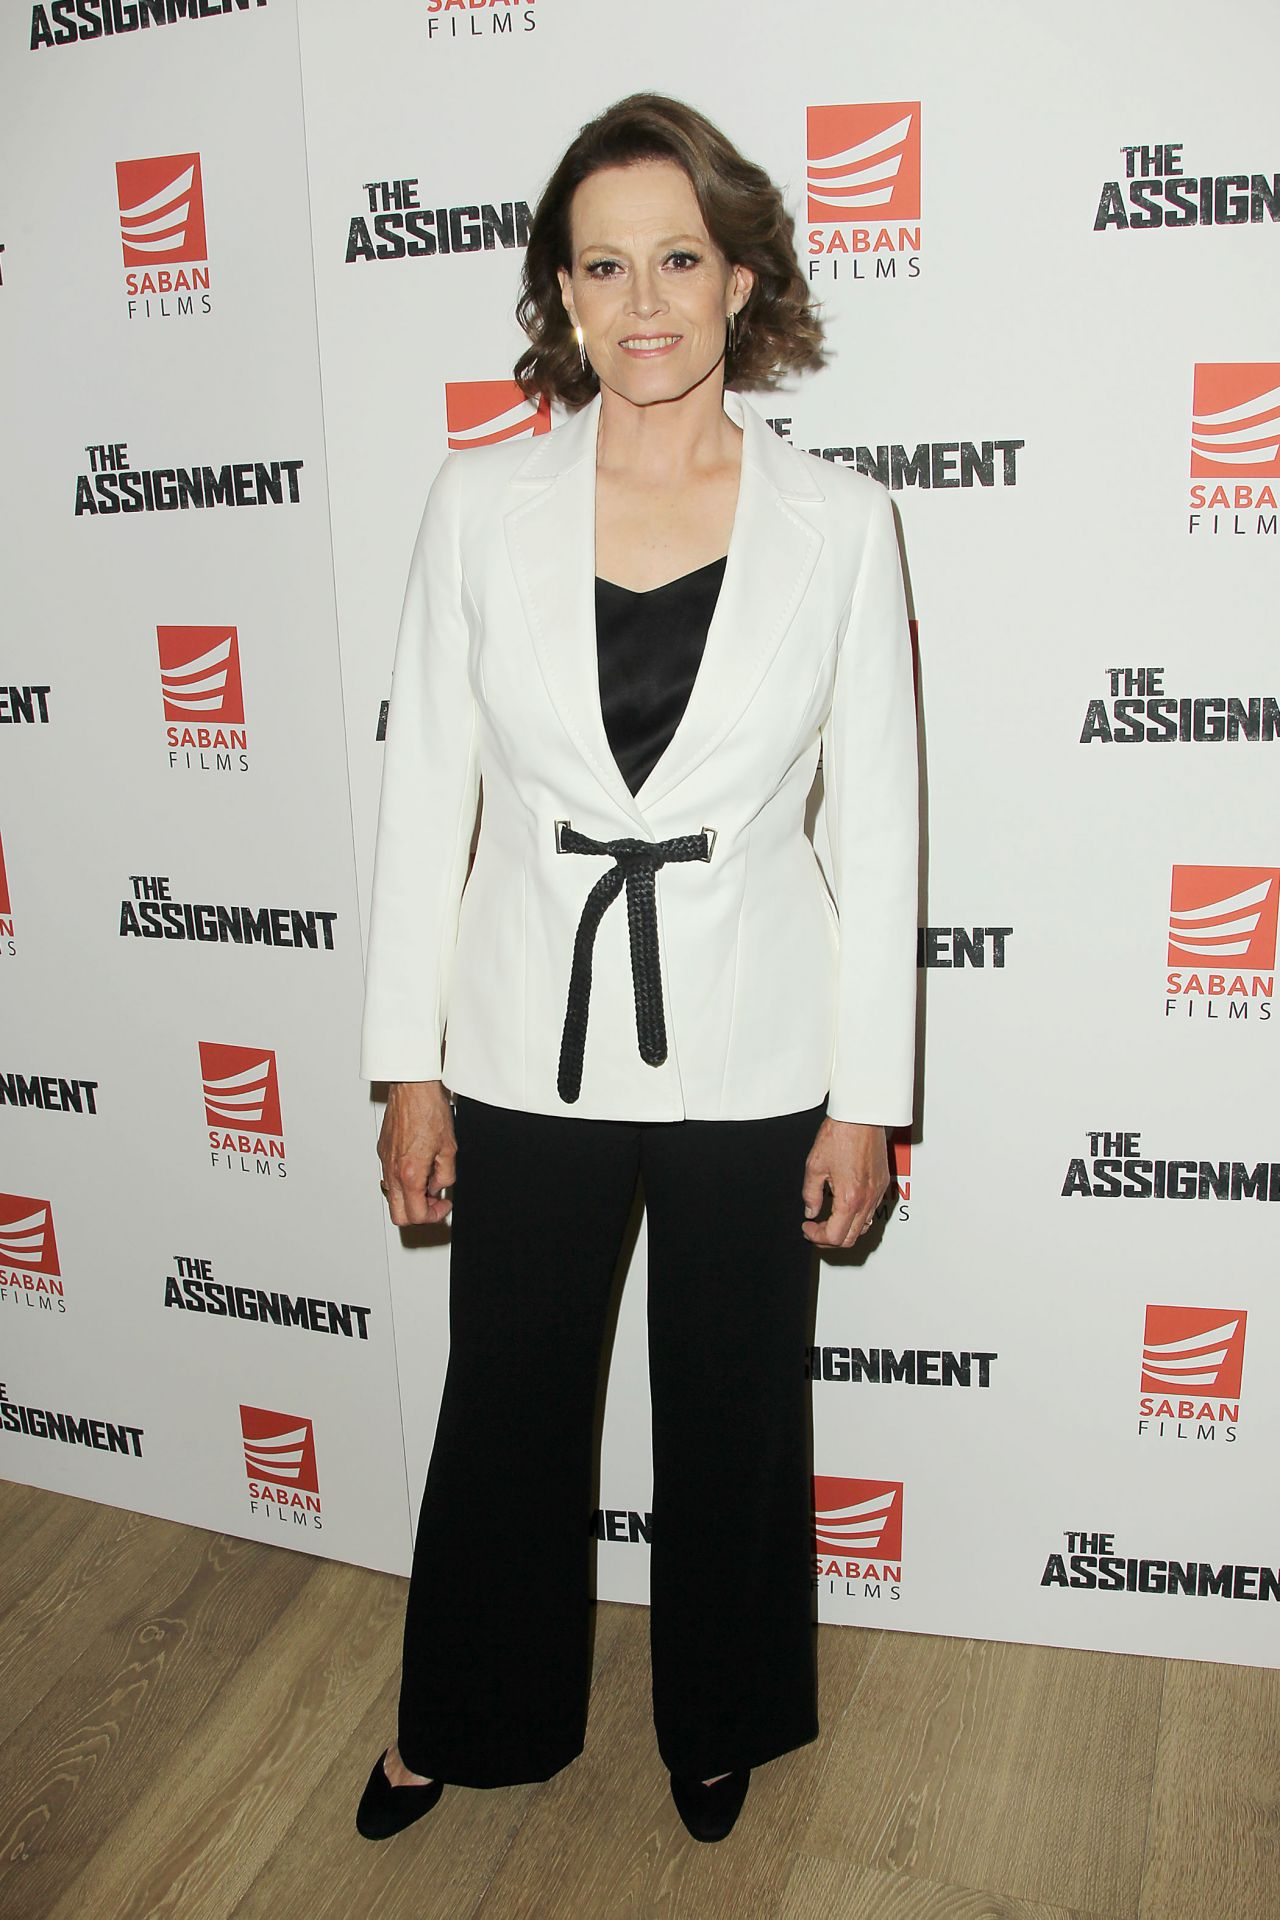 Sigourney Weaver Quot The Assignment Quot Movie Screening In New